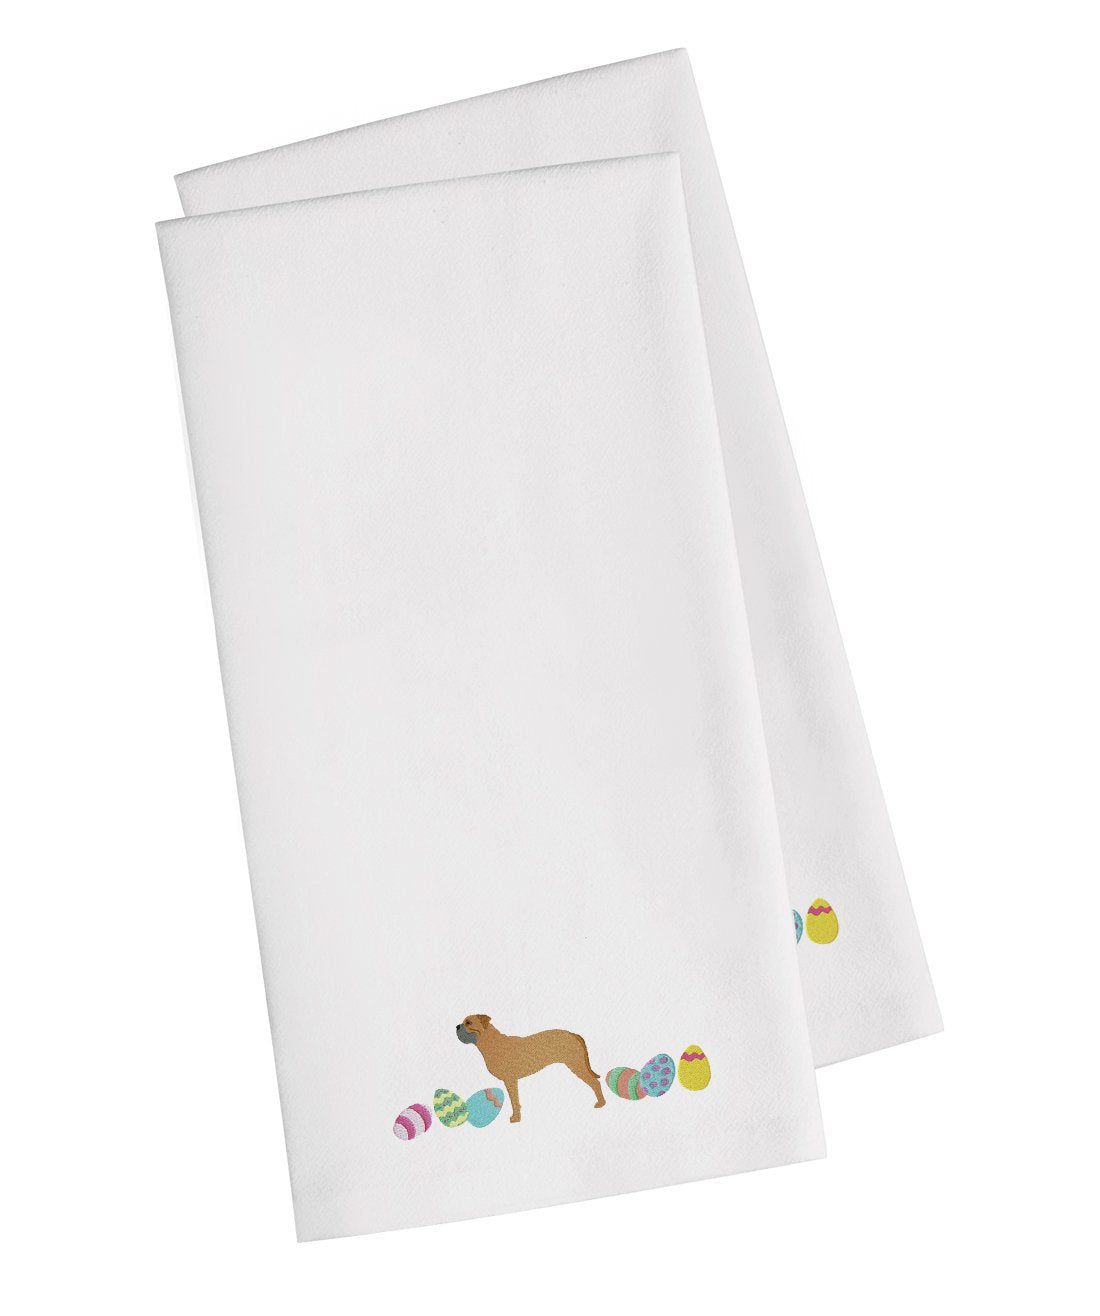 Bullmastiff Easter White Embroidered Kitchen Towel Set of 2 CK1619WHTWE by Caroline's Treasures